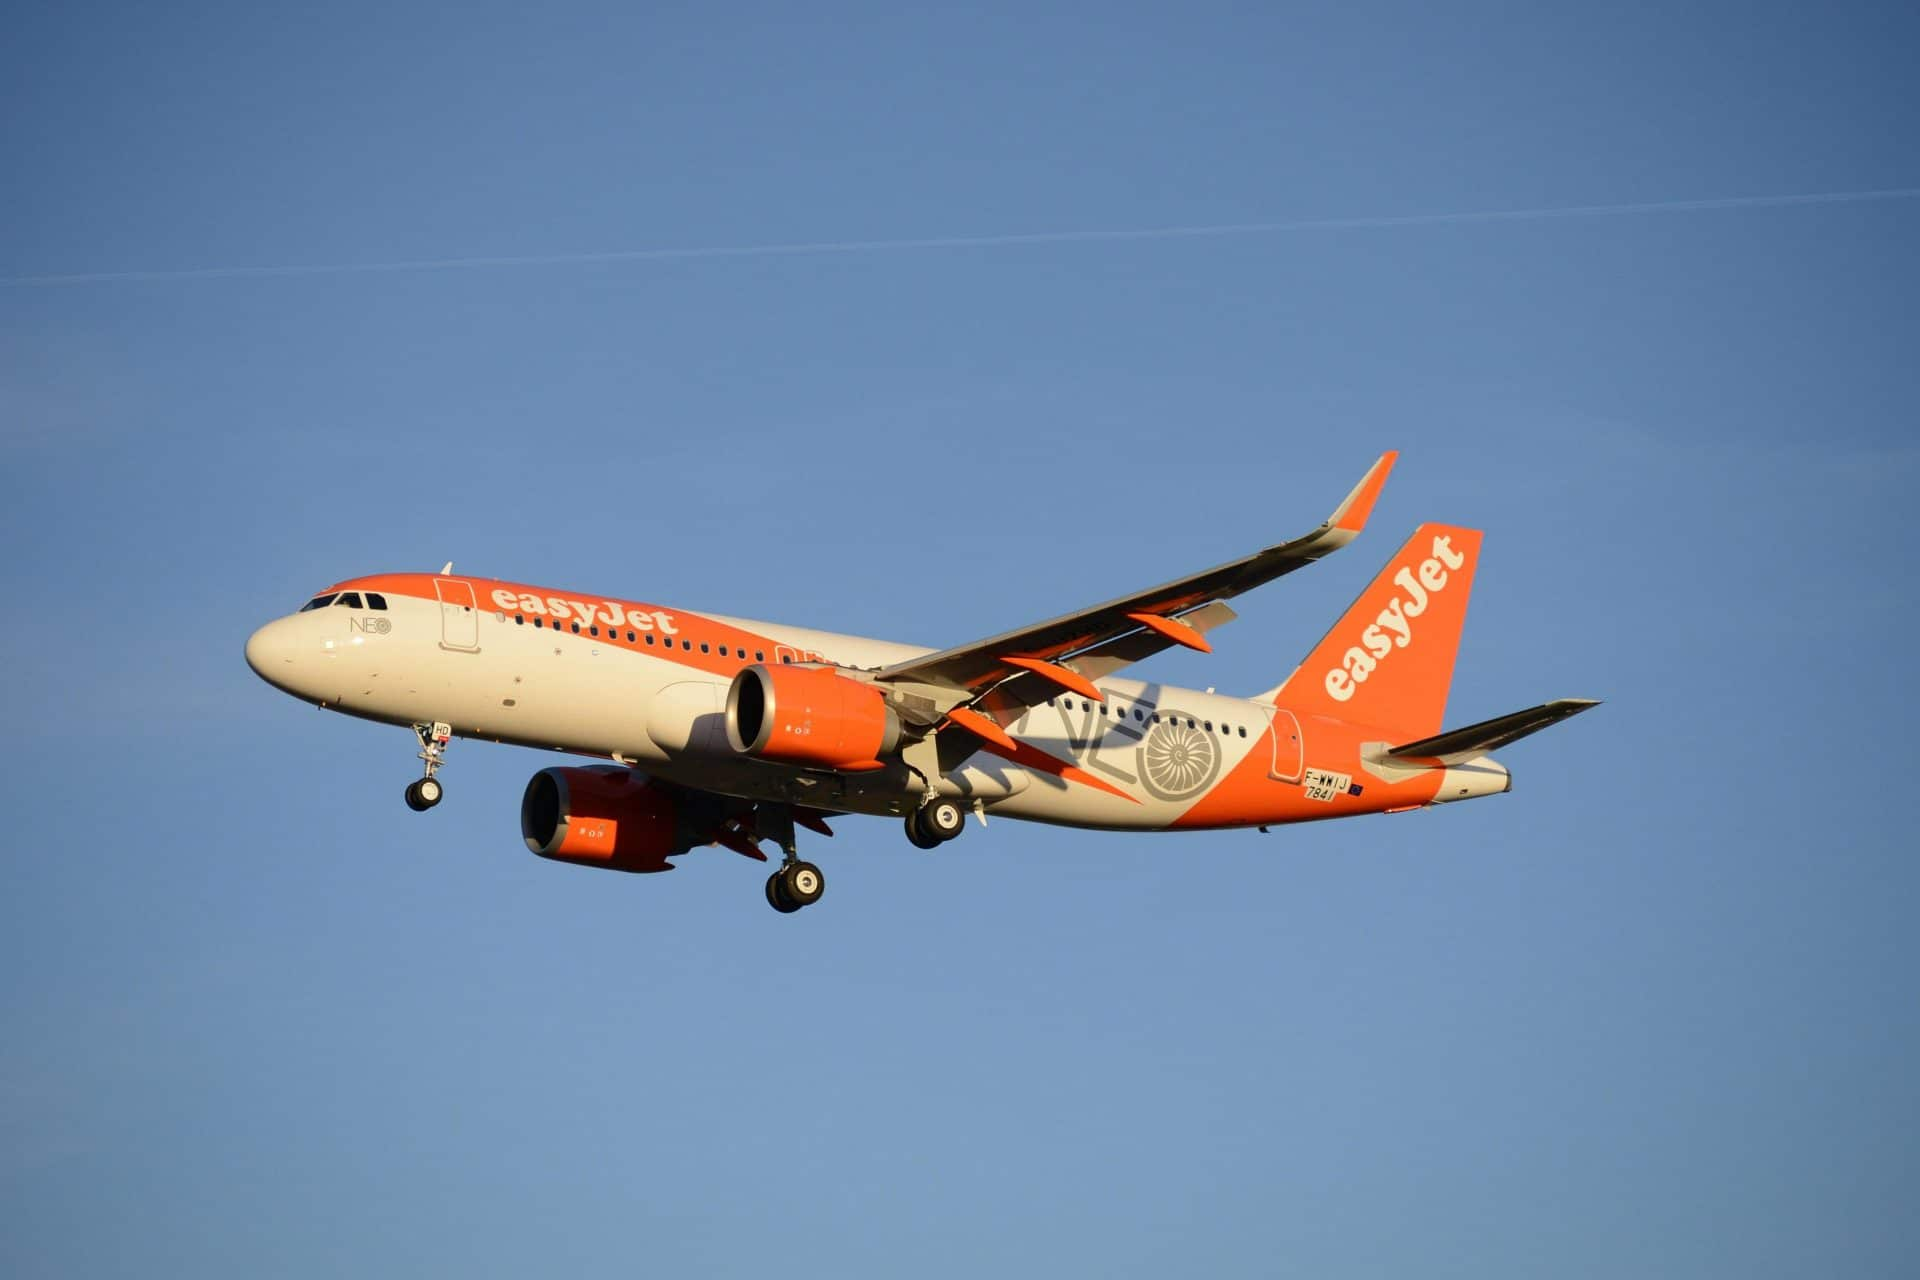 easyjet - photo #30